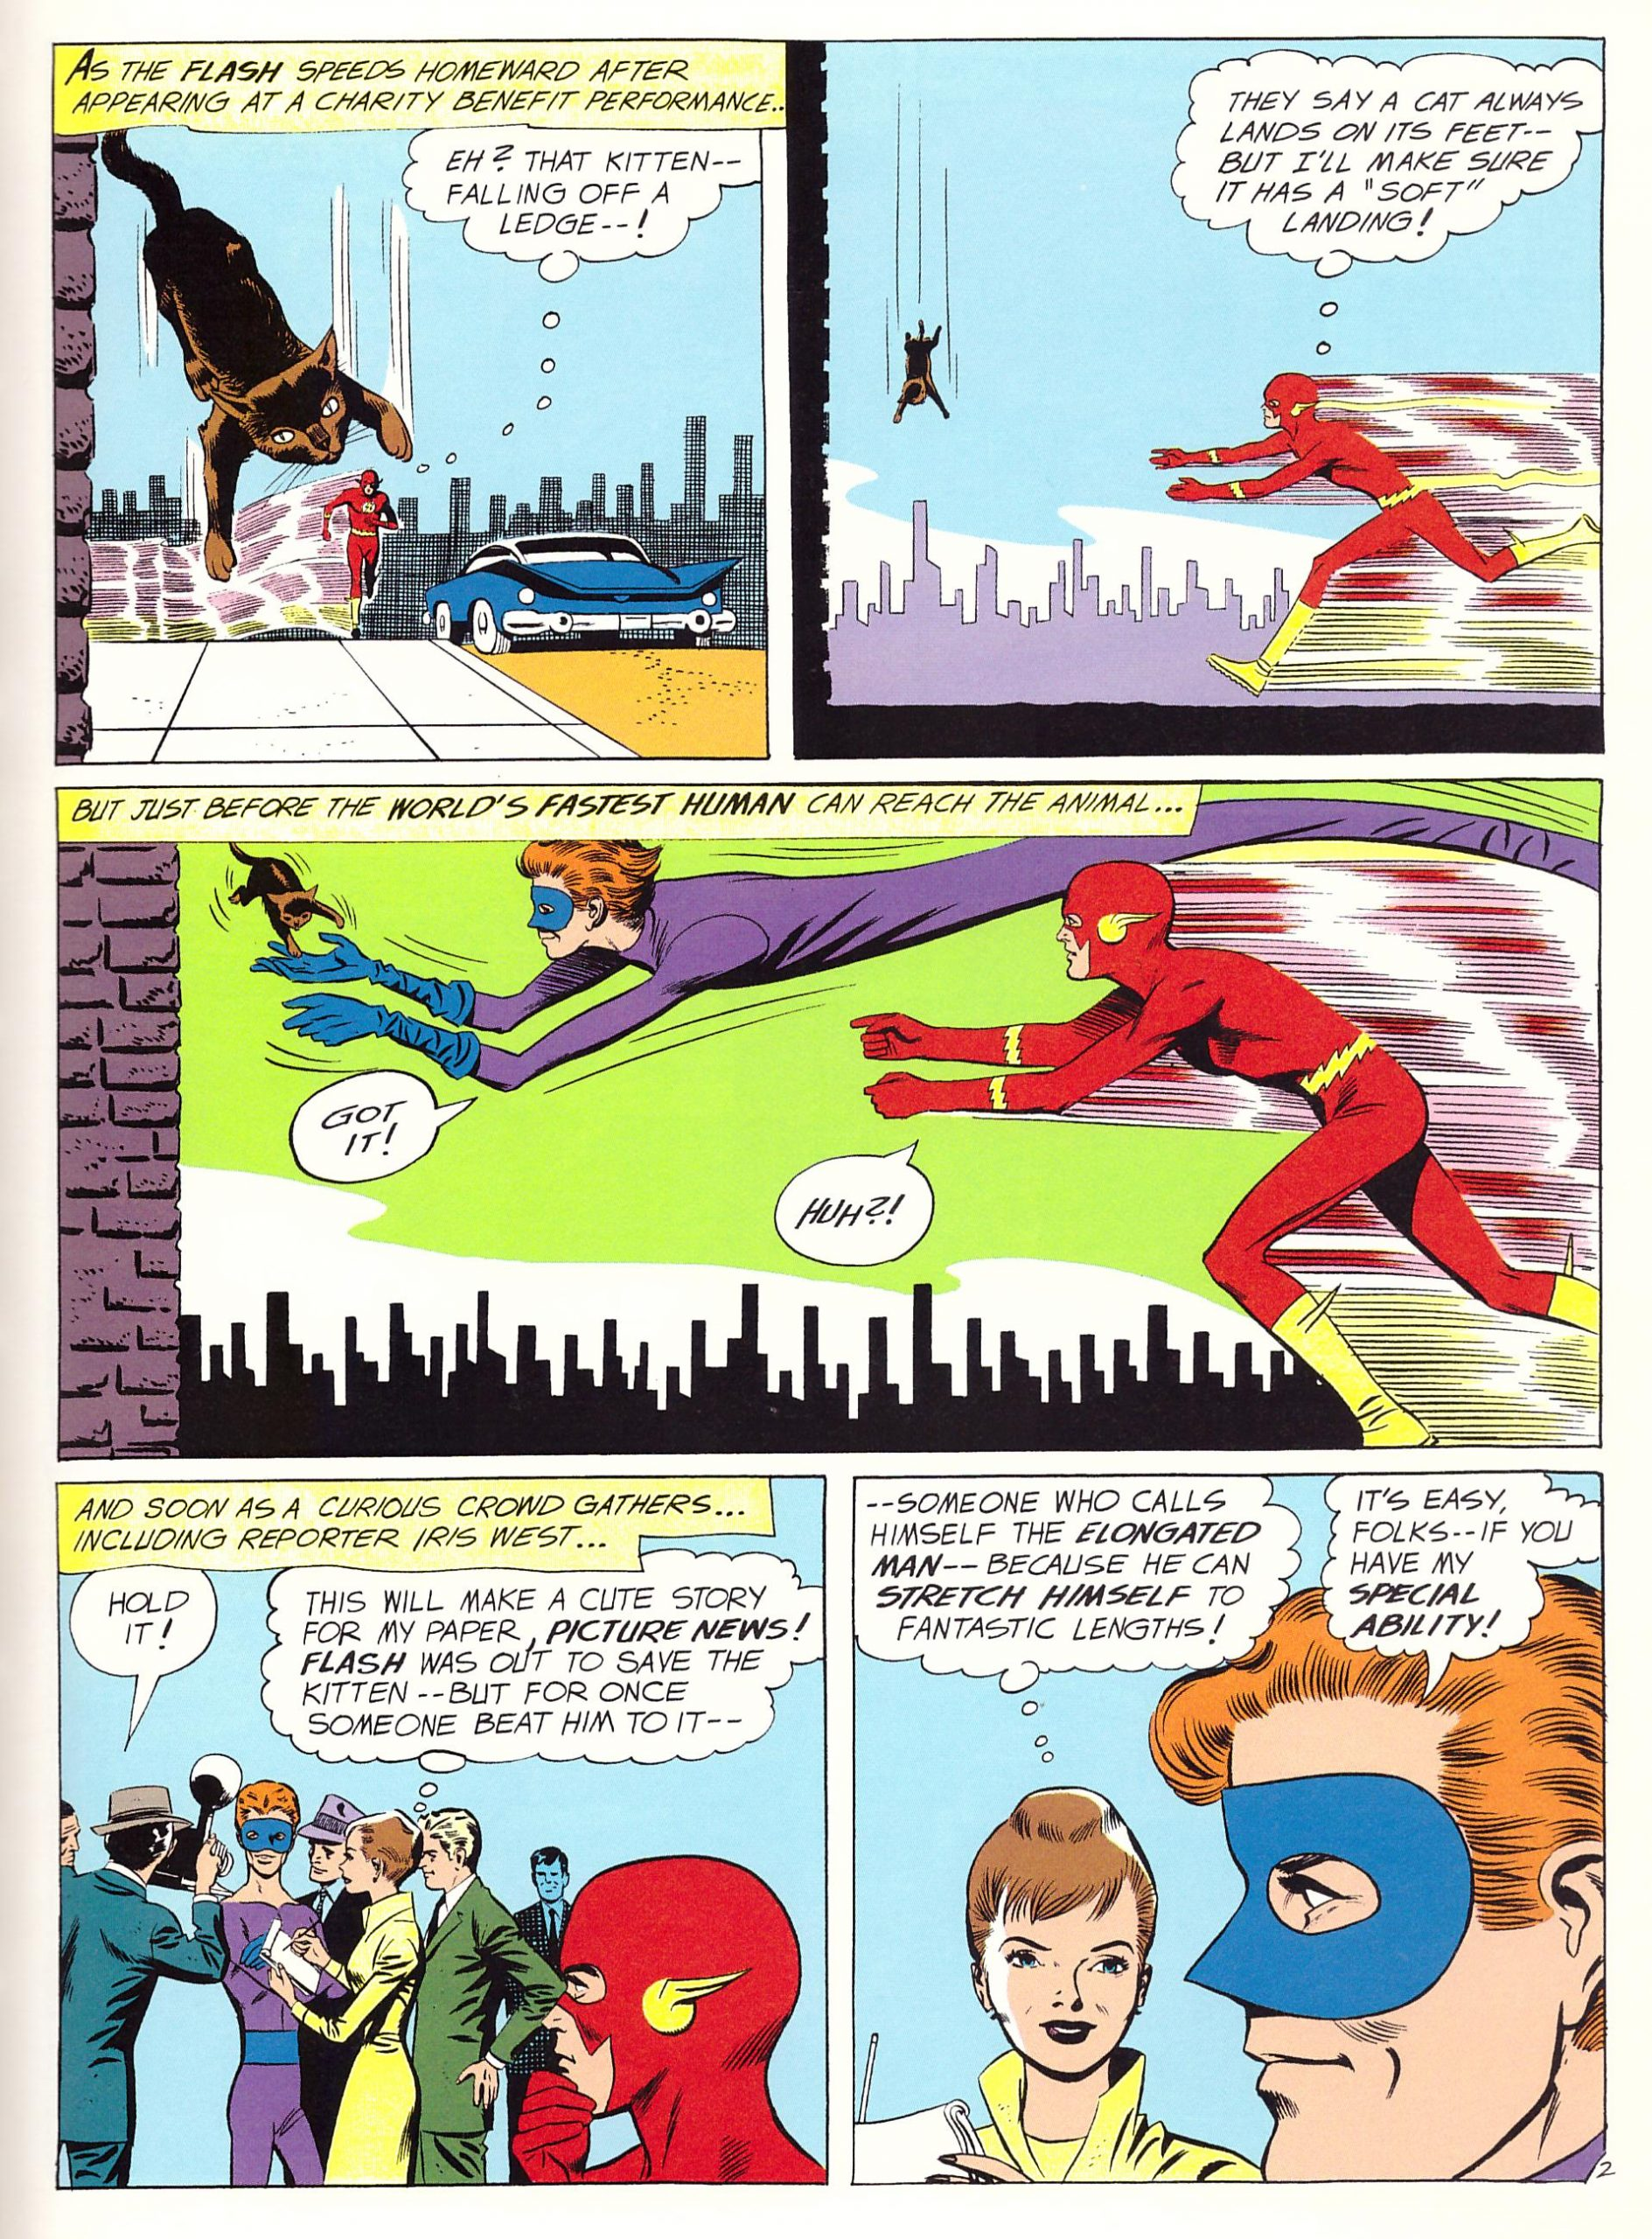 The Flash Chronicles Vol 2 review